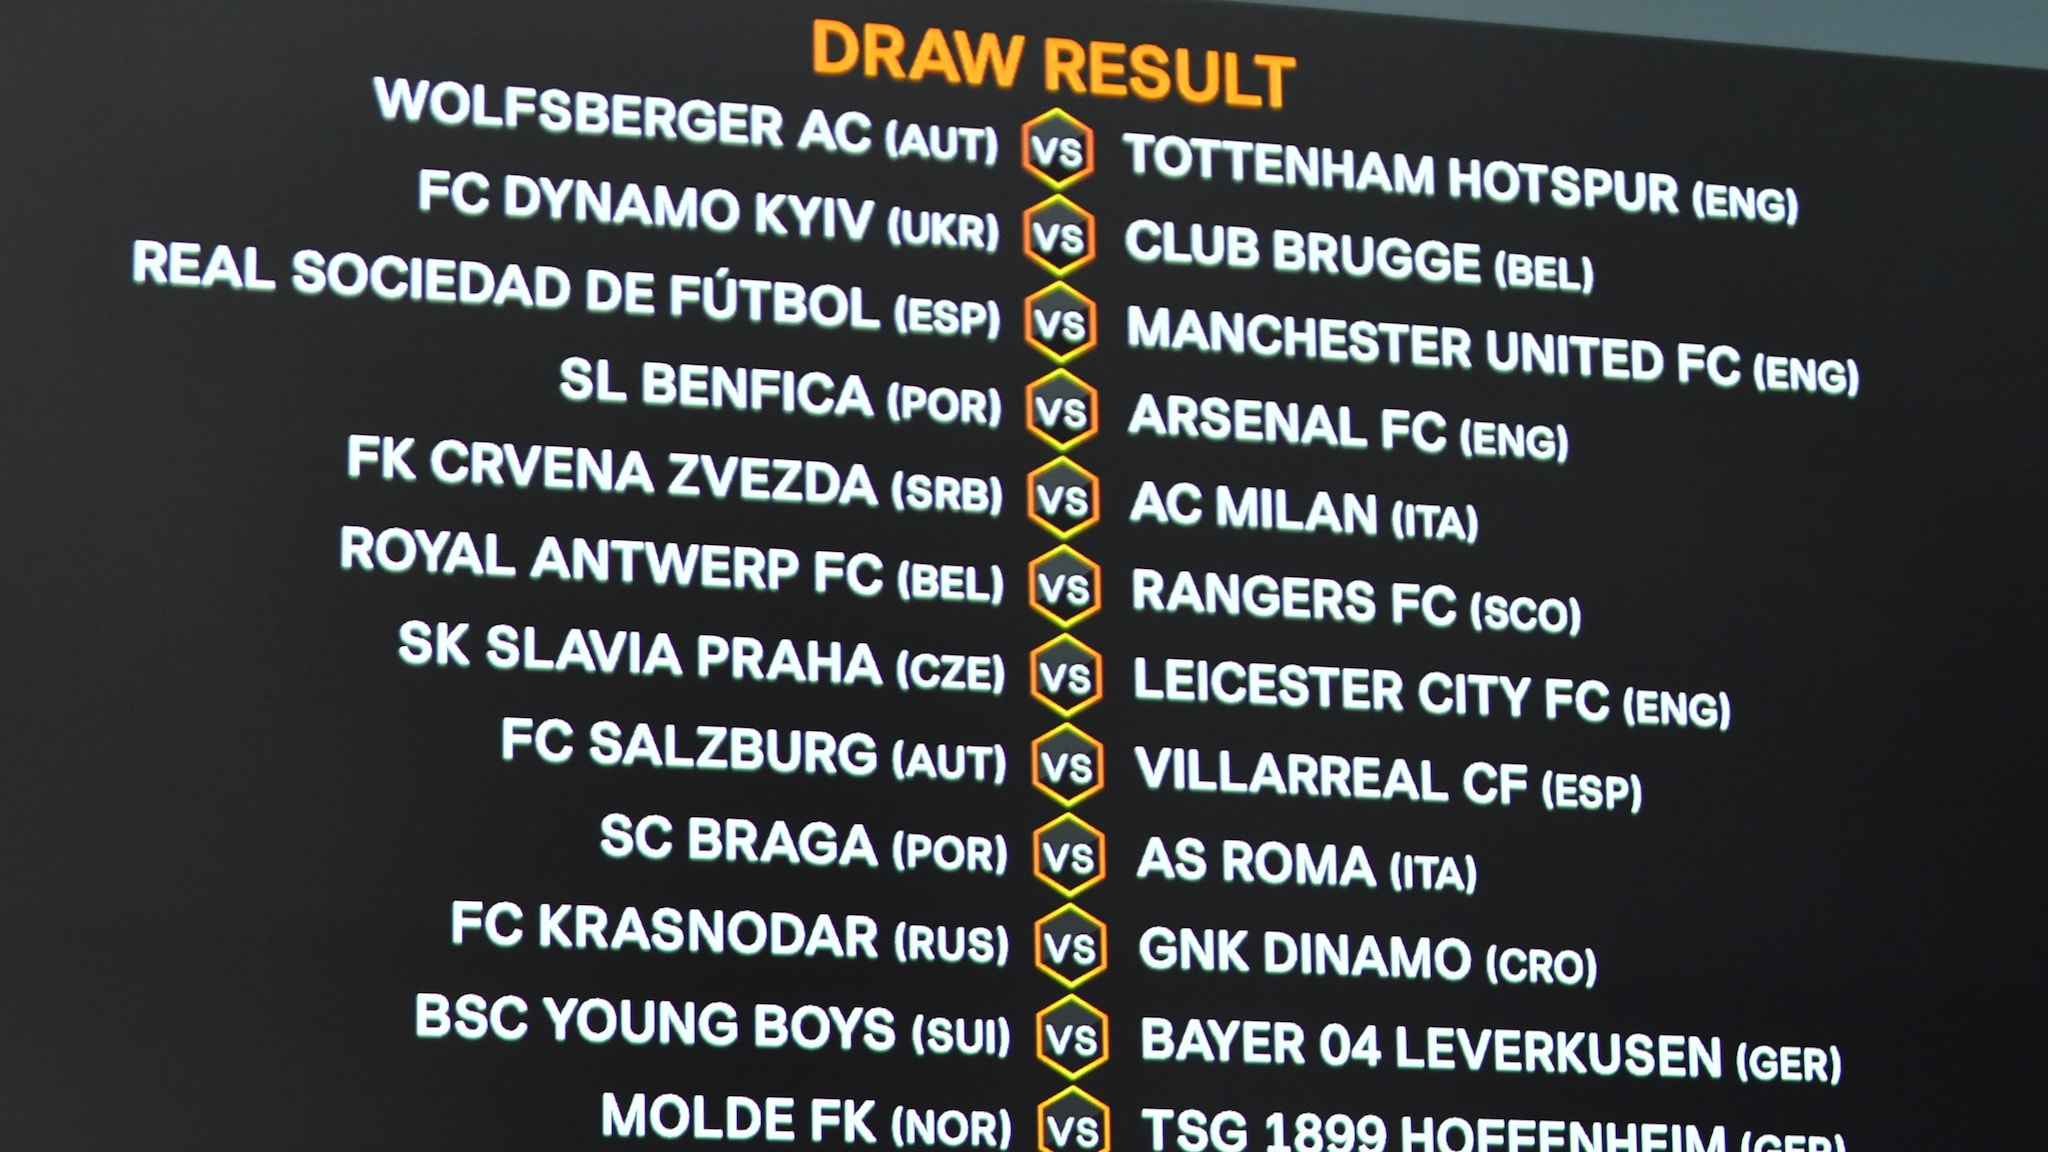 Europa League round of 32 draw: who will face who?